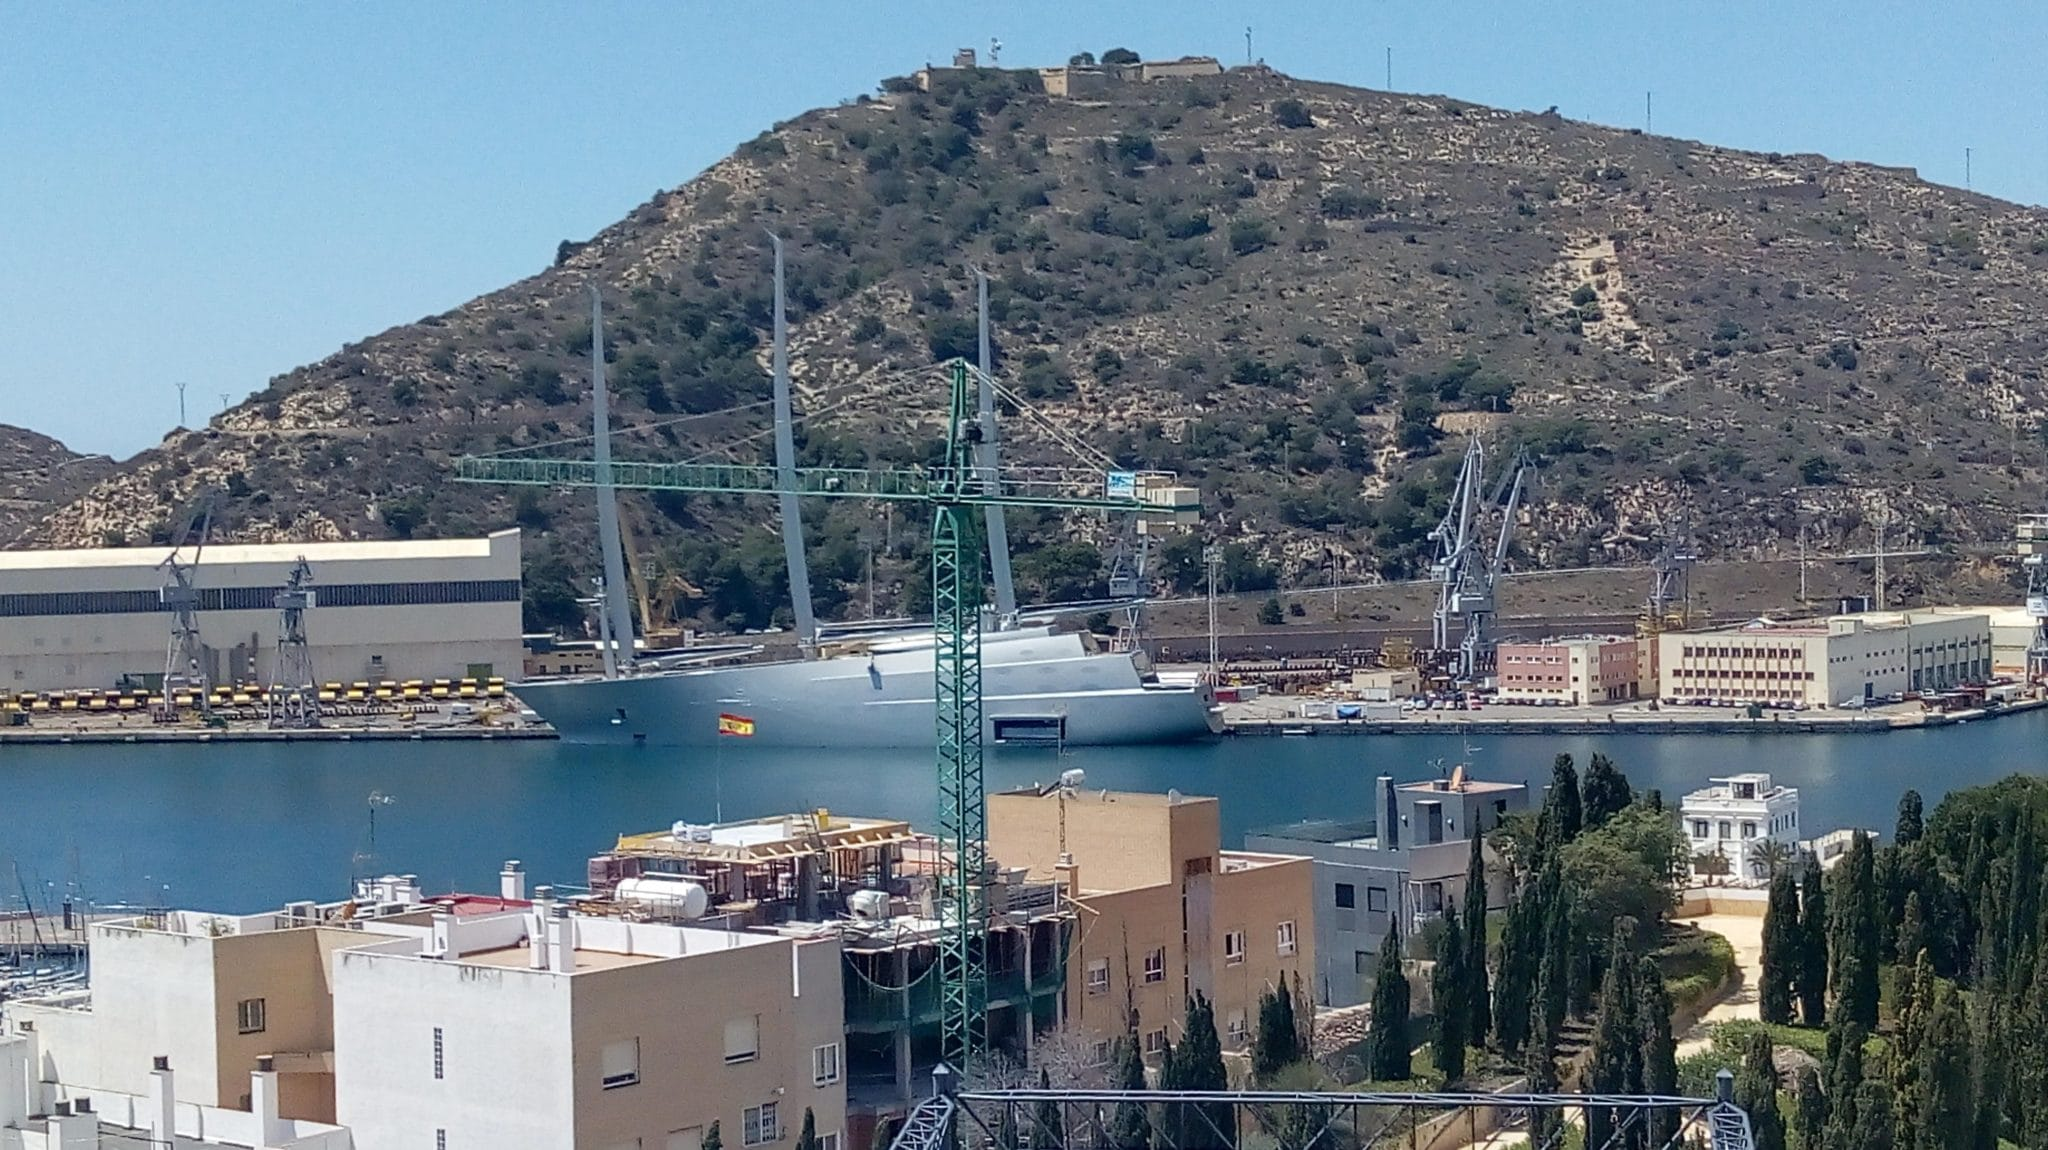 mega yacht in Cartegena harbour